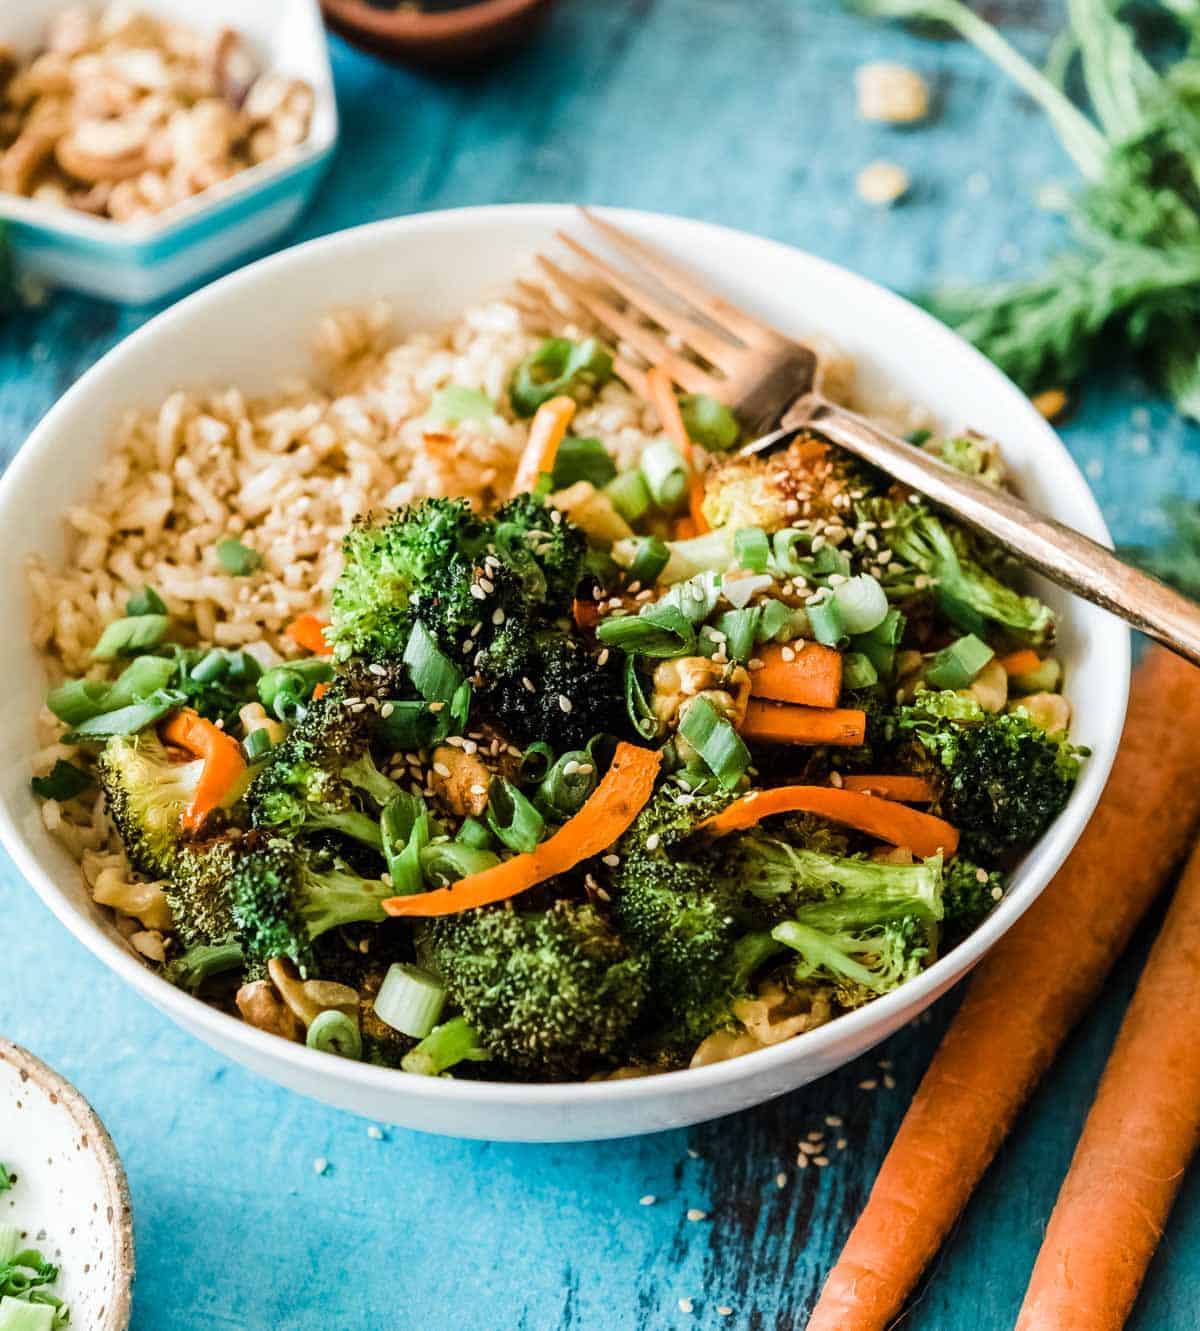 DIY Vegan rice bowl recipes